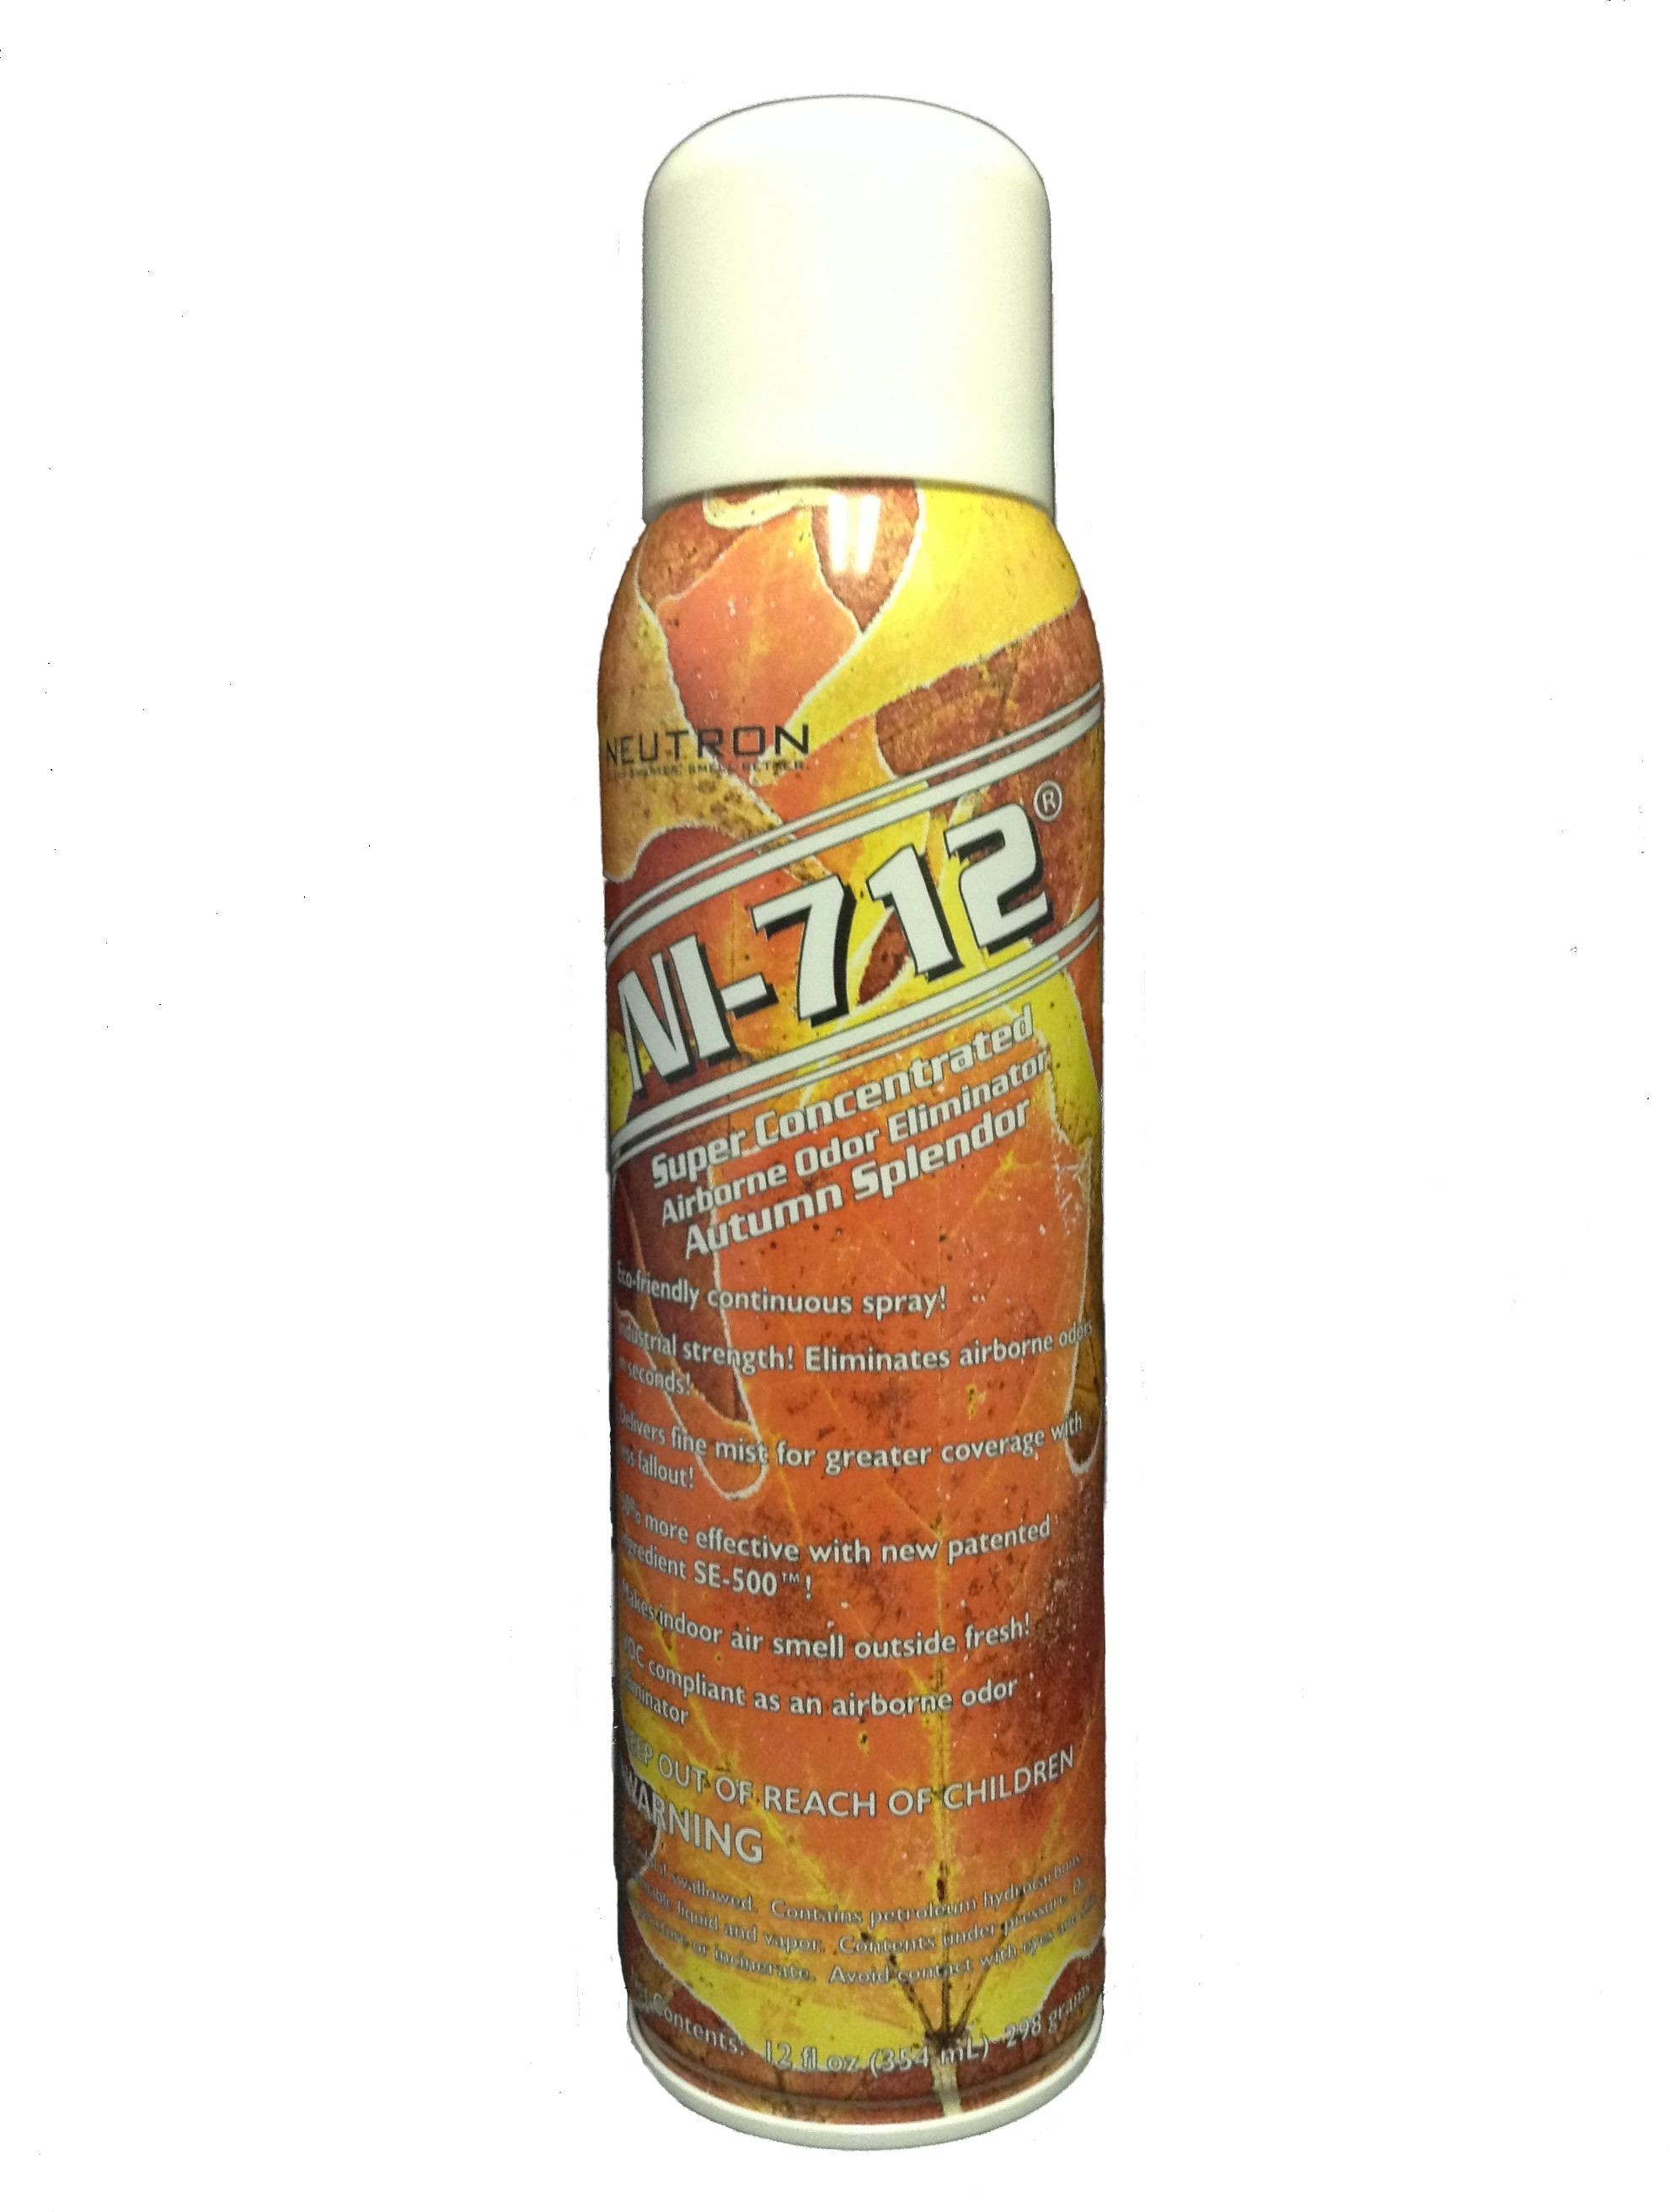 NI-712 Odor Eliminator, Autumn Splendor (1) 12 Fl Oz Continuous Spray